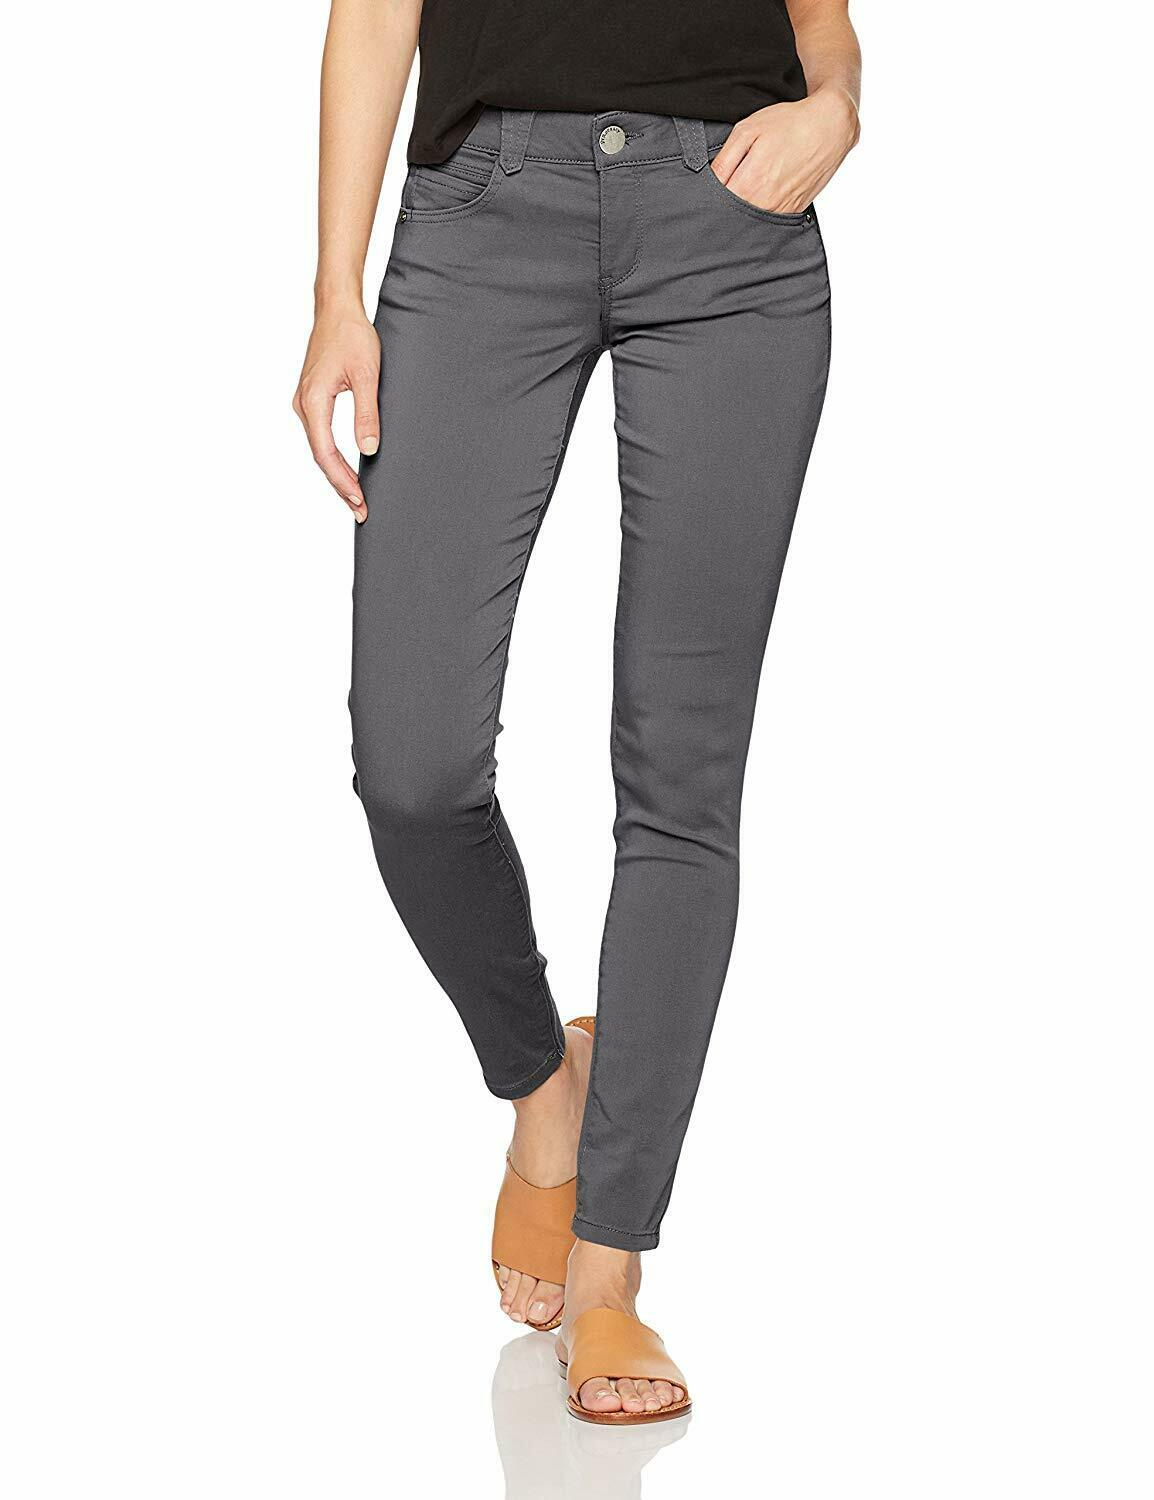 202c33722cc Democracy Women's Ab Solution colord Lift Jegging Booty nrnvlp6515 ...